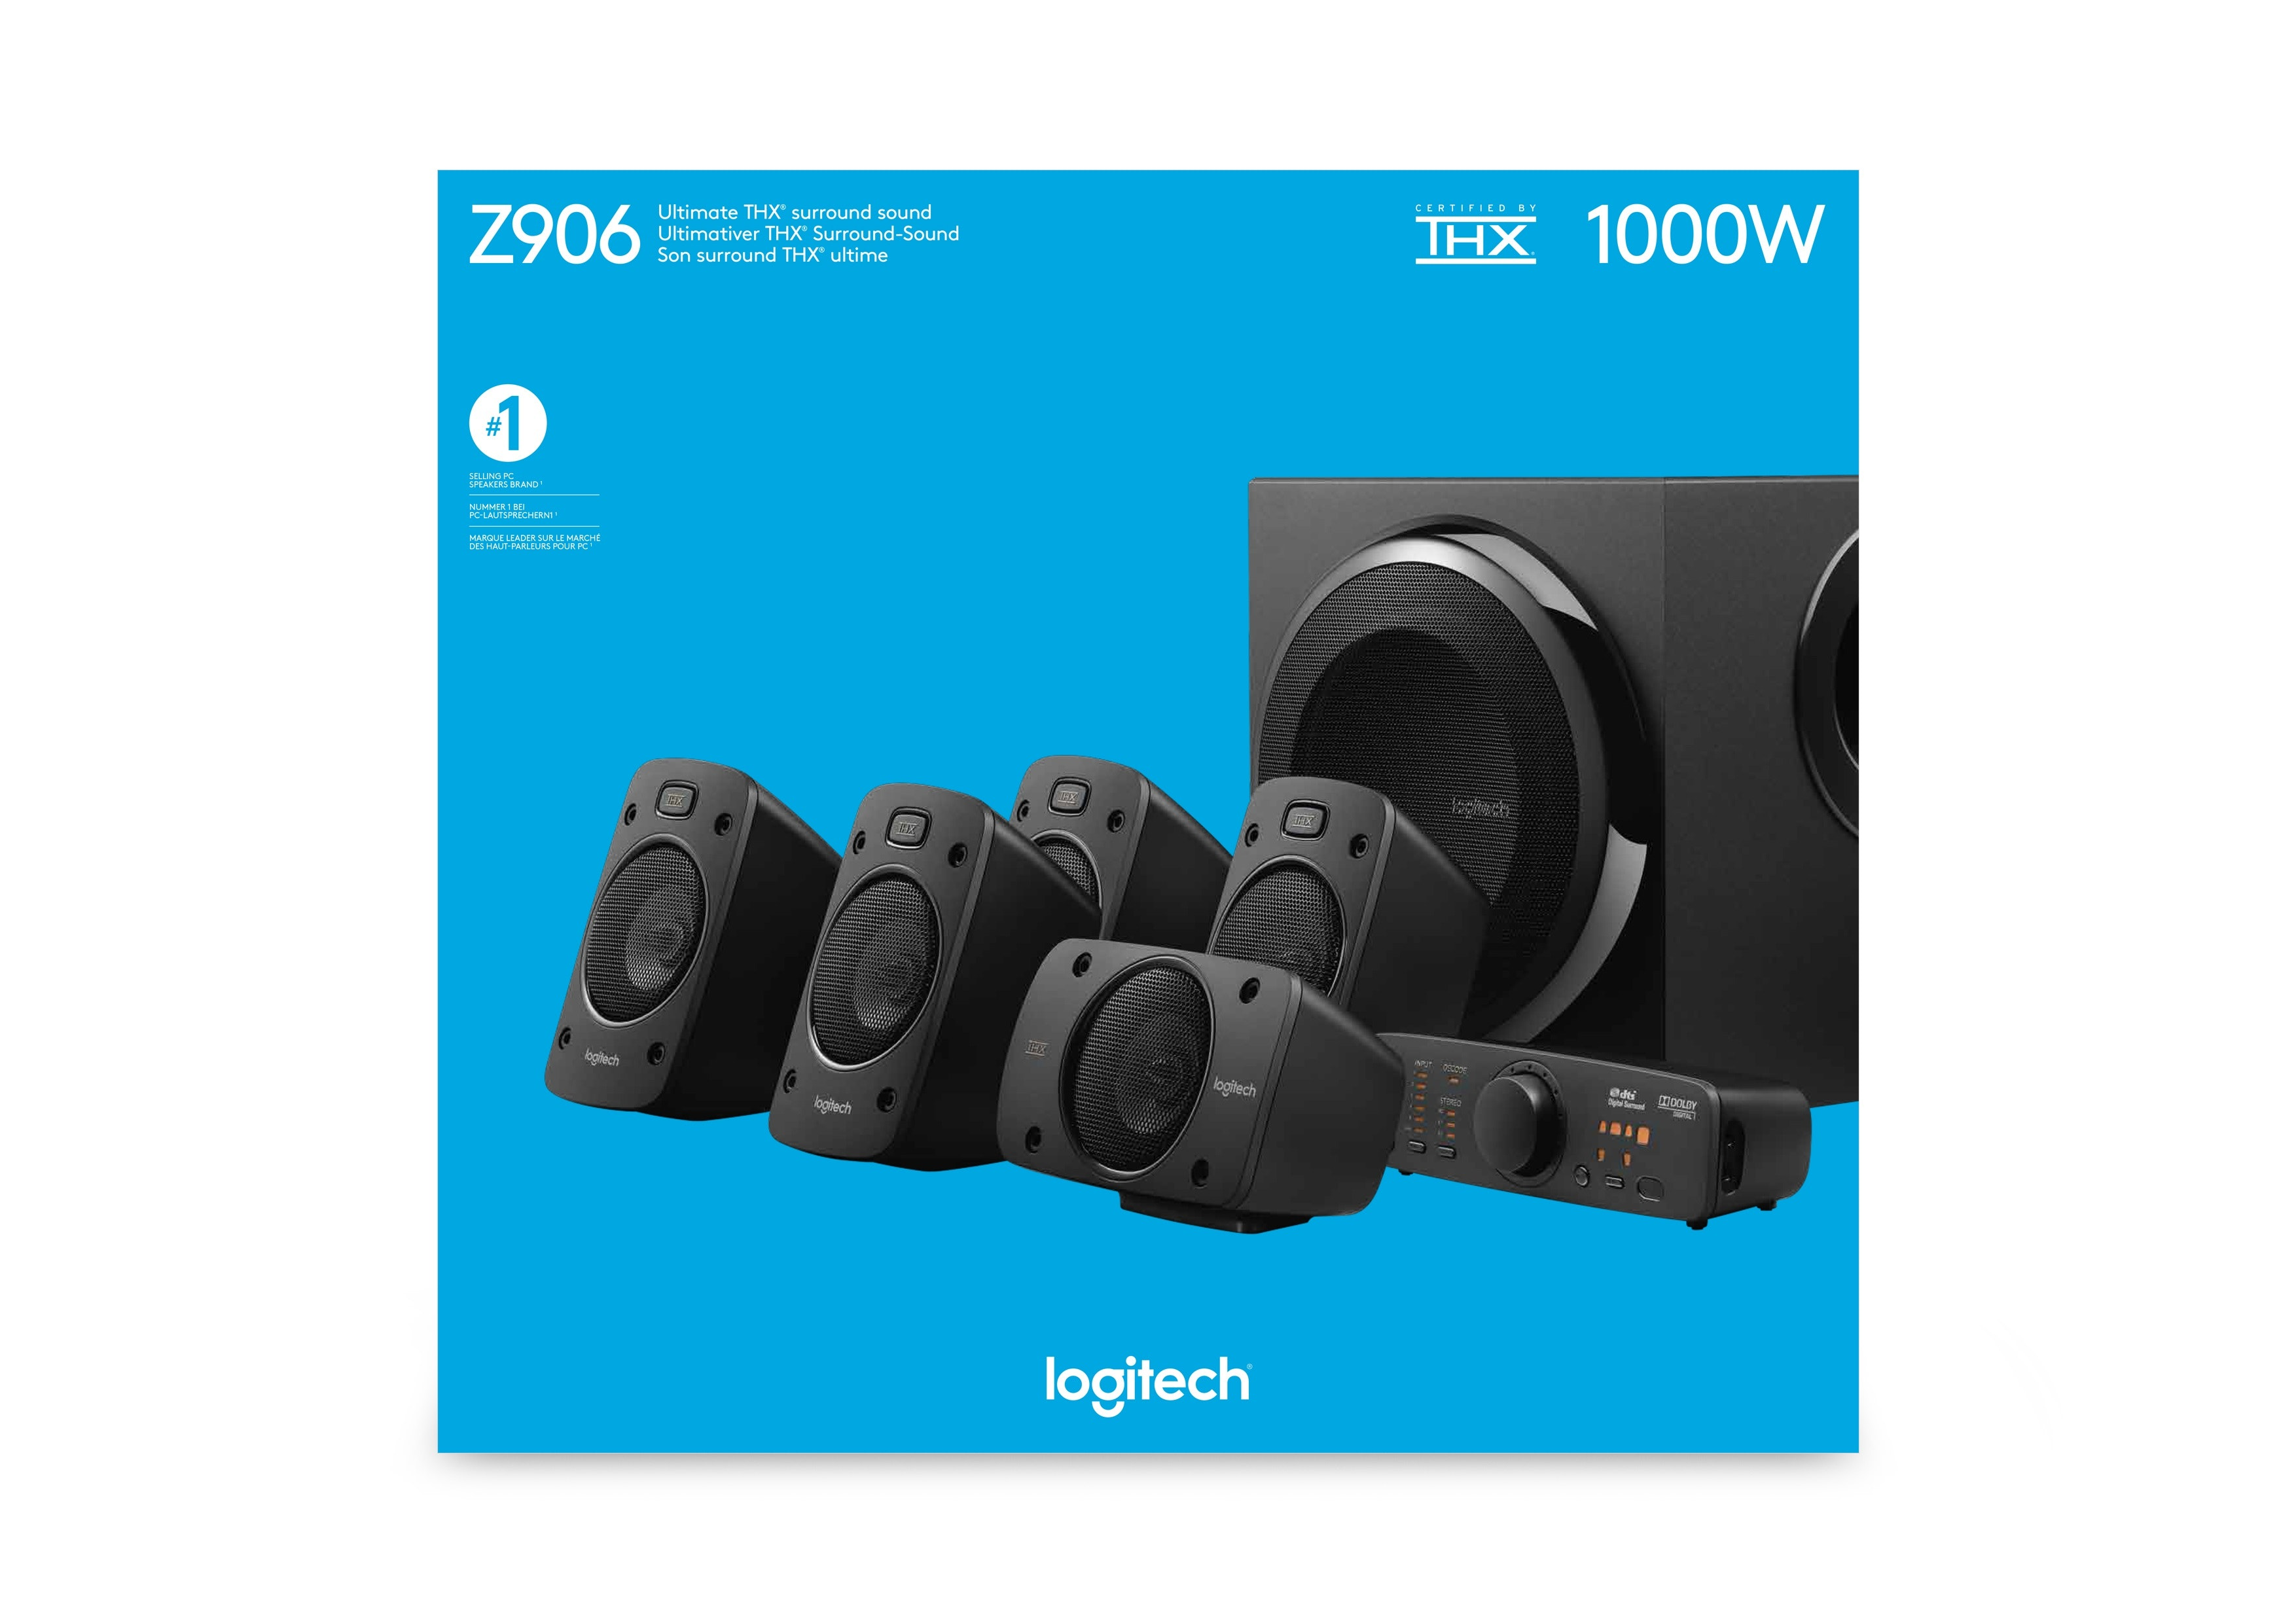 The Mummy and Logitech Surround Sound Speaker sweepstakes